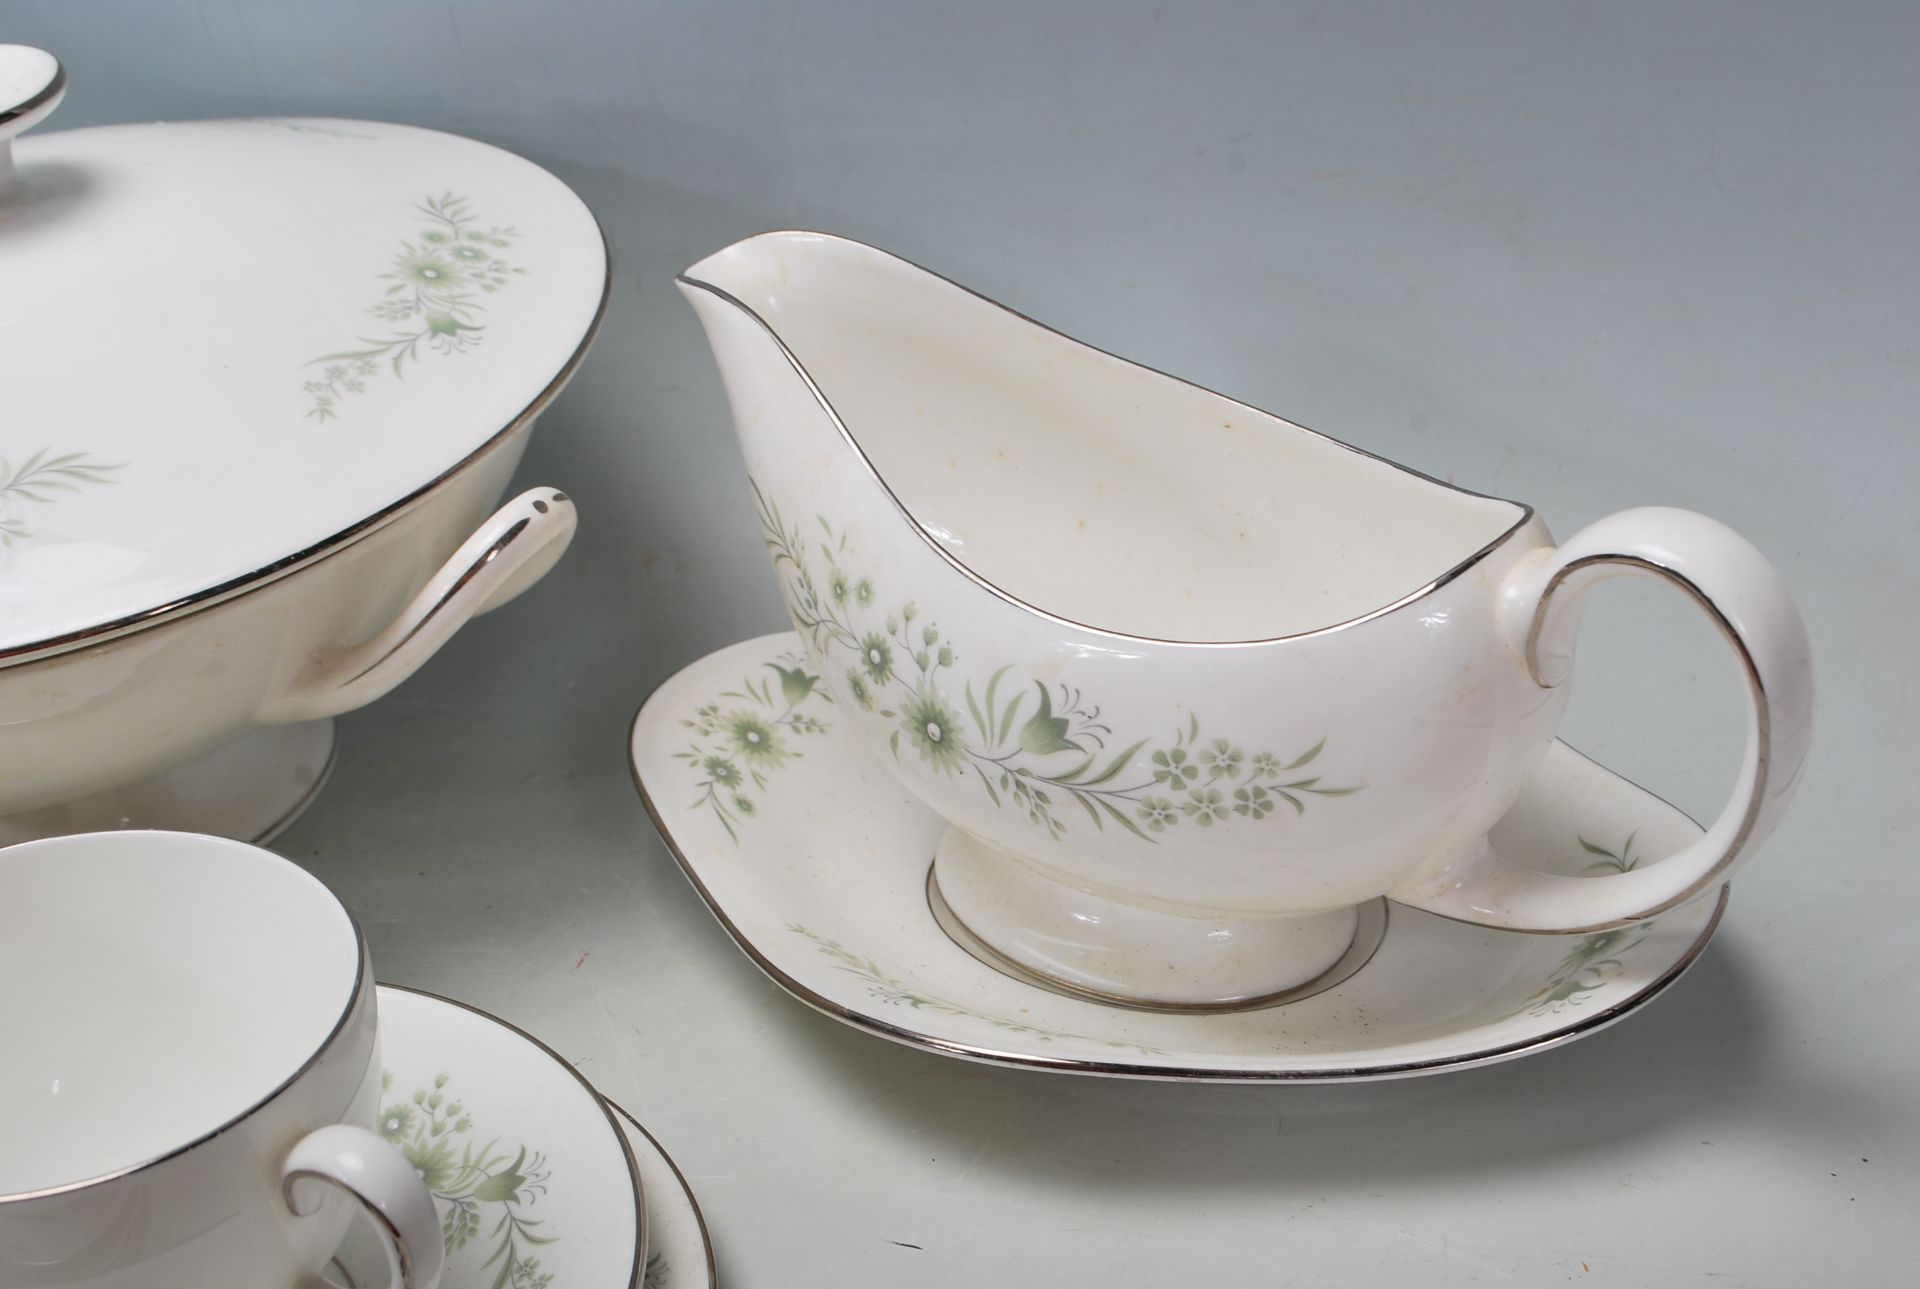 COLLECTION OF LATE 20TH CENTURY WEDGWOOD FINE BONE CHINA - Image 5 of 9